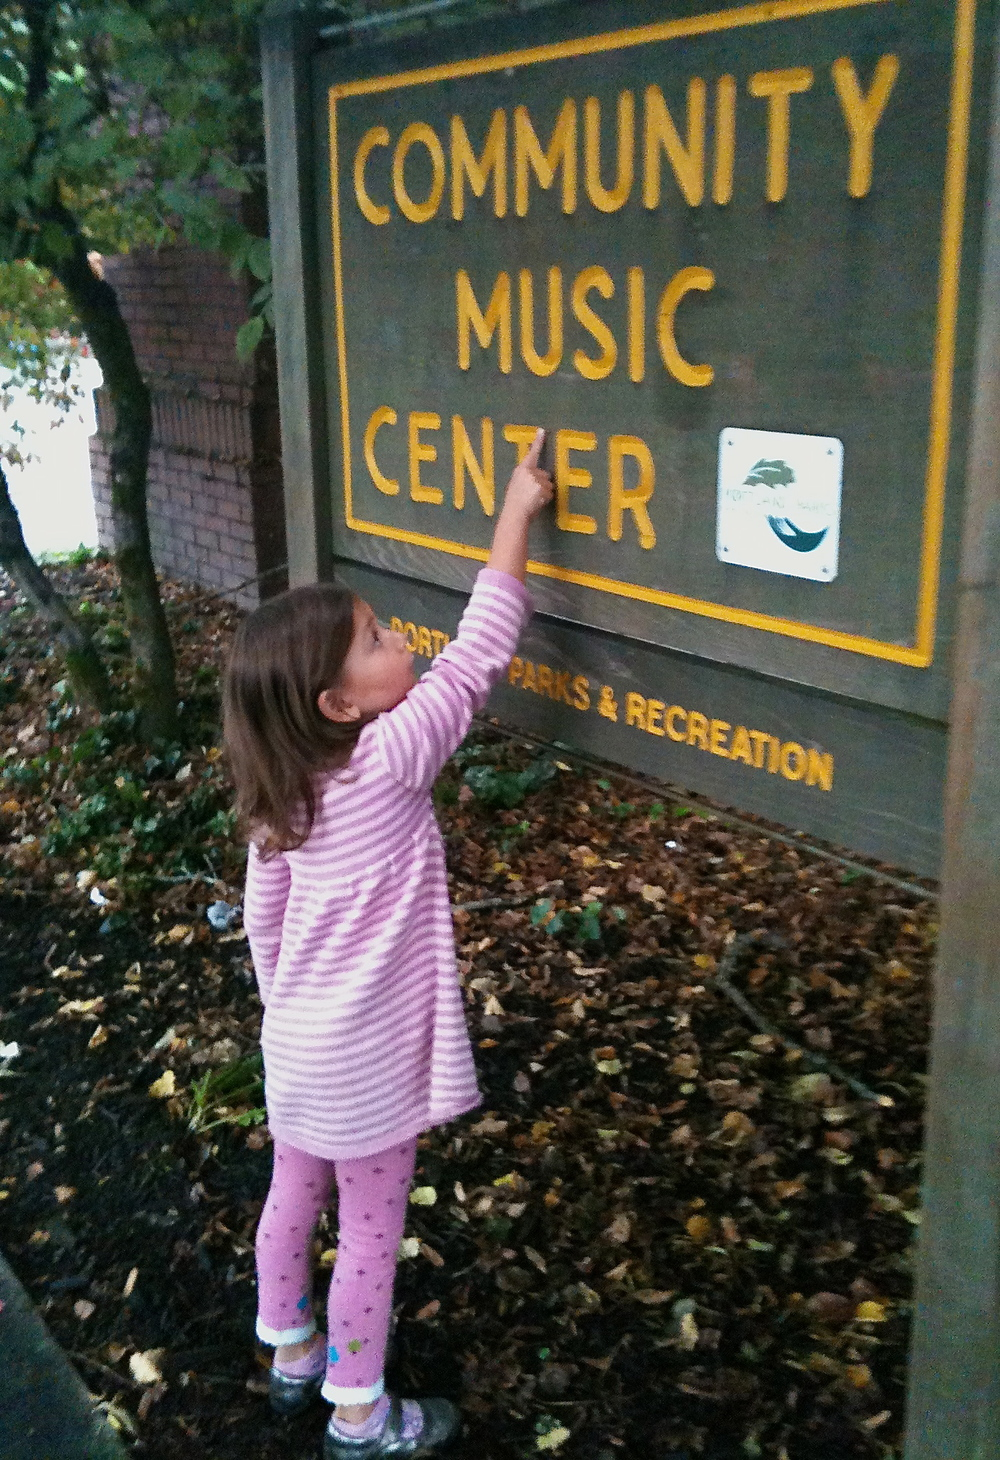 community music center sign.jpg